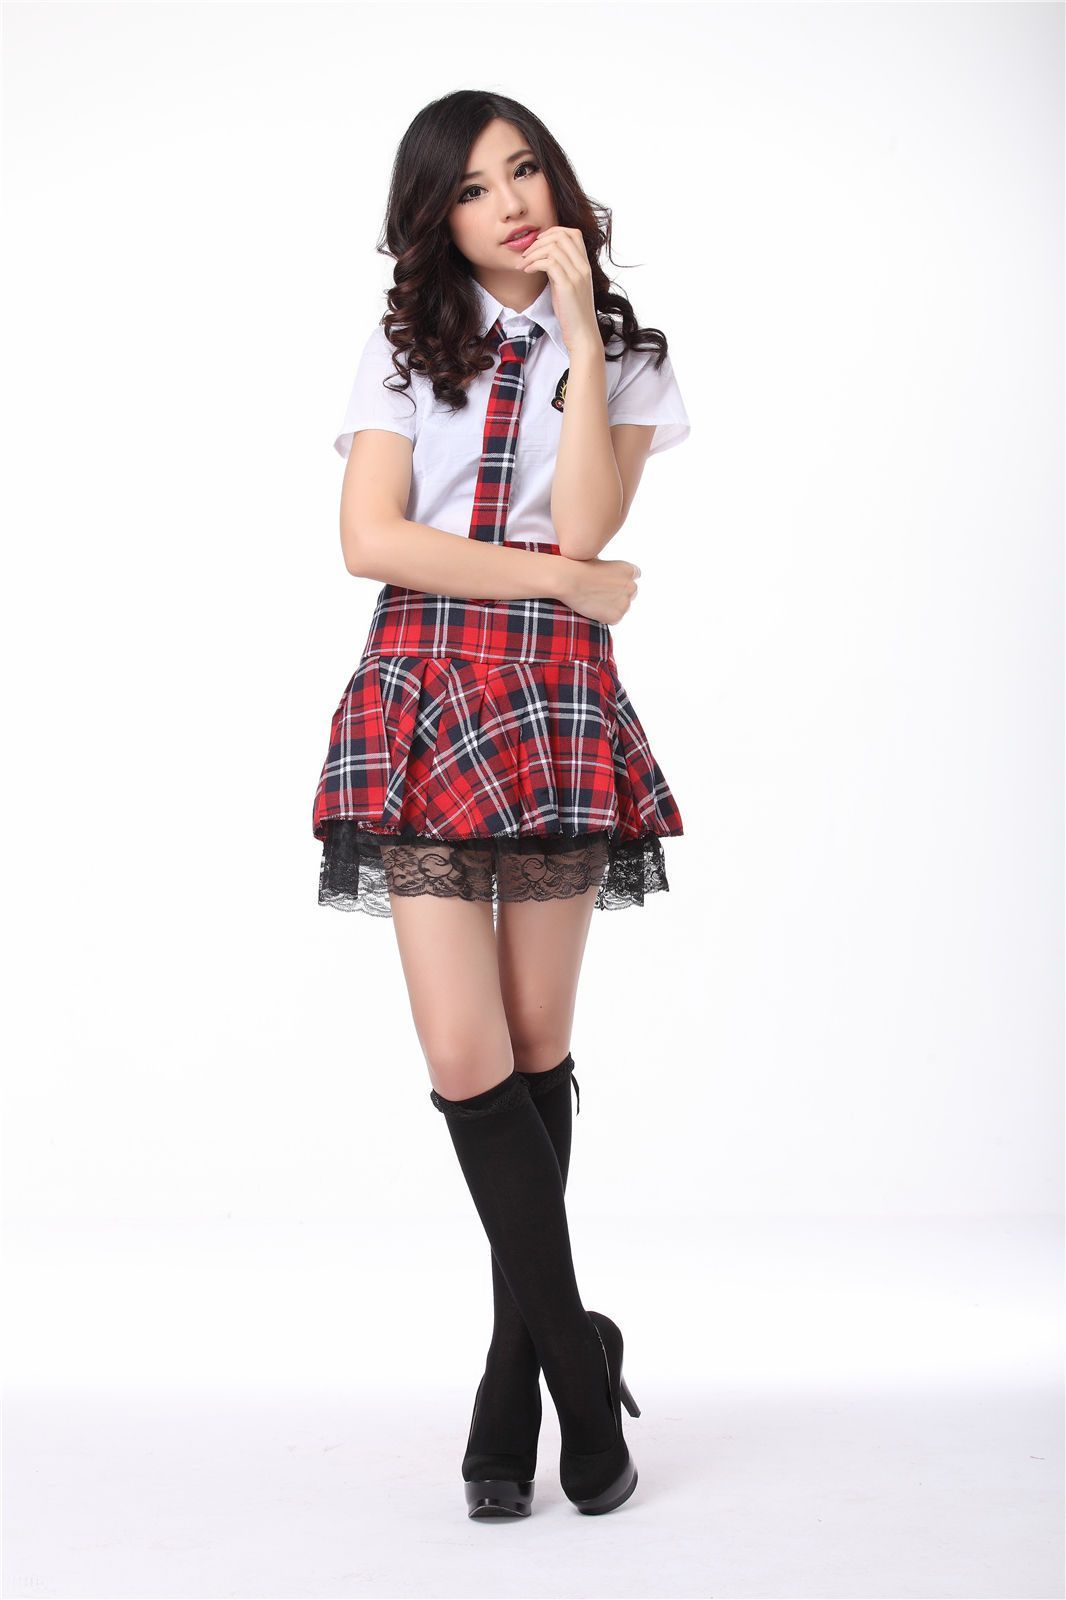 Costumes Clothing, Shoes & Accessories Halloween Women Schoolgirl Students Cosplay Costume Ladies Dress Uniform Outfit Handsome Appearance